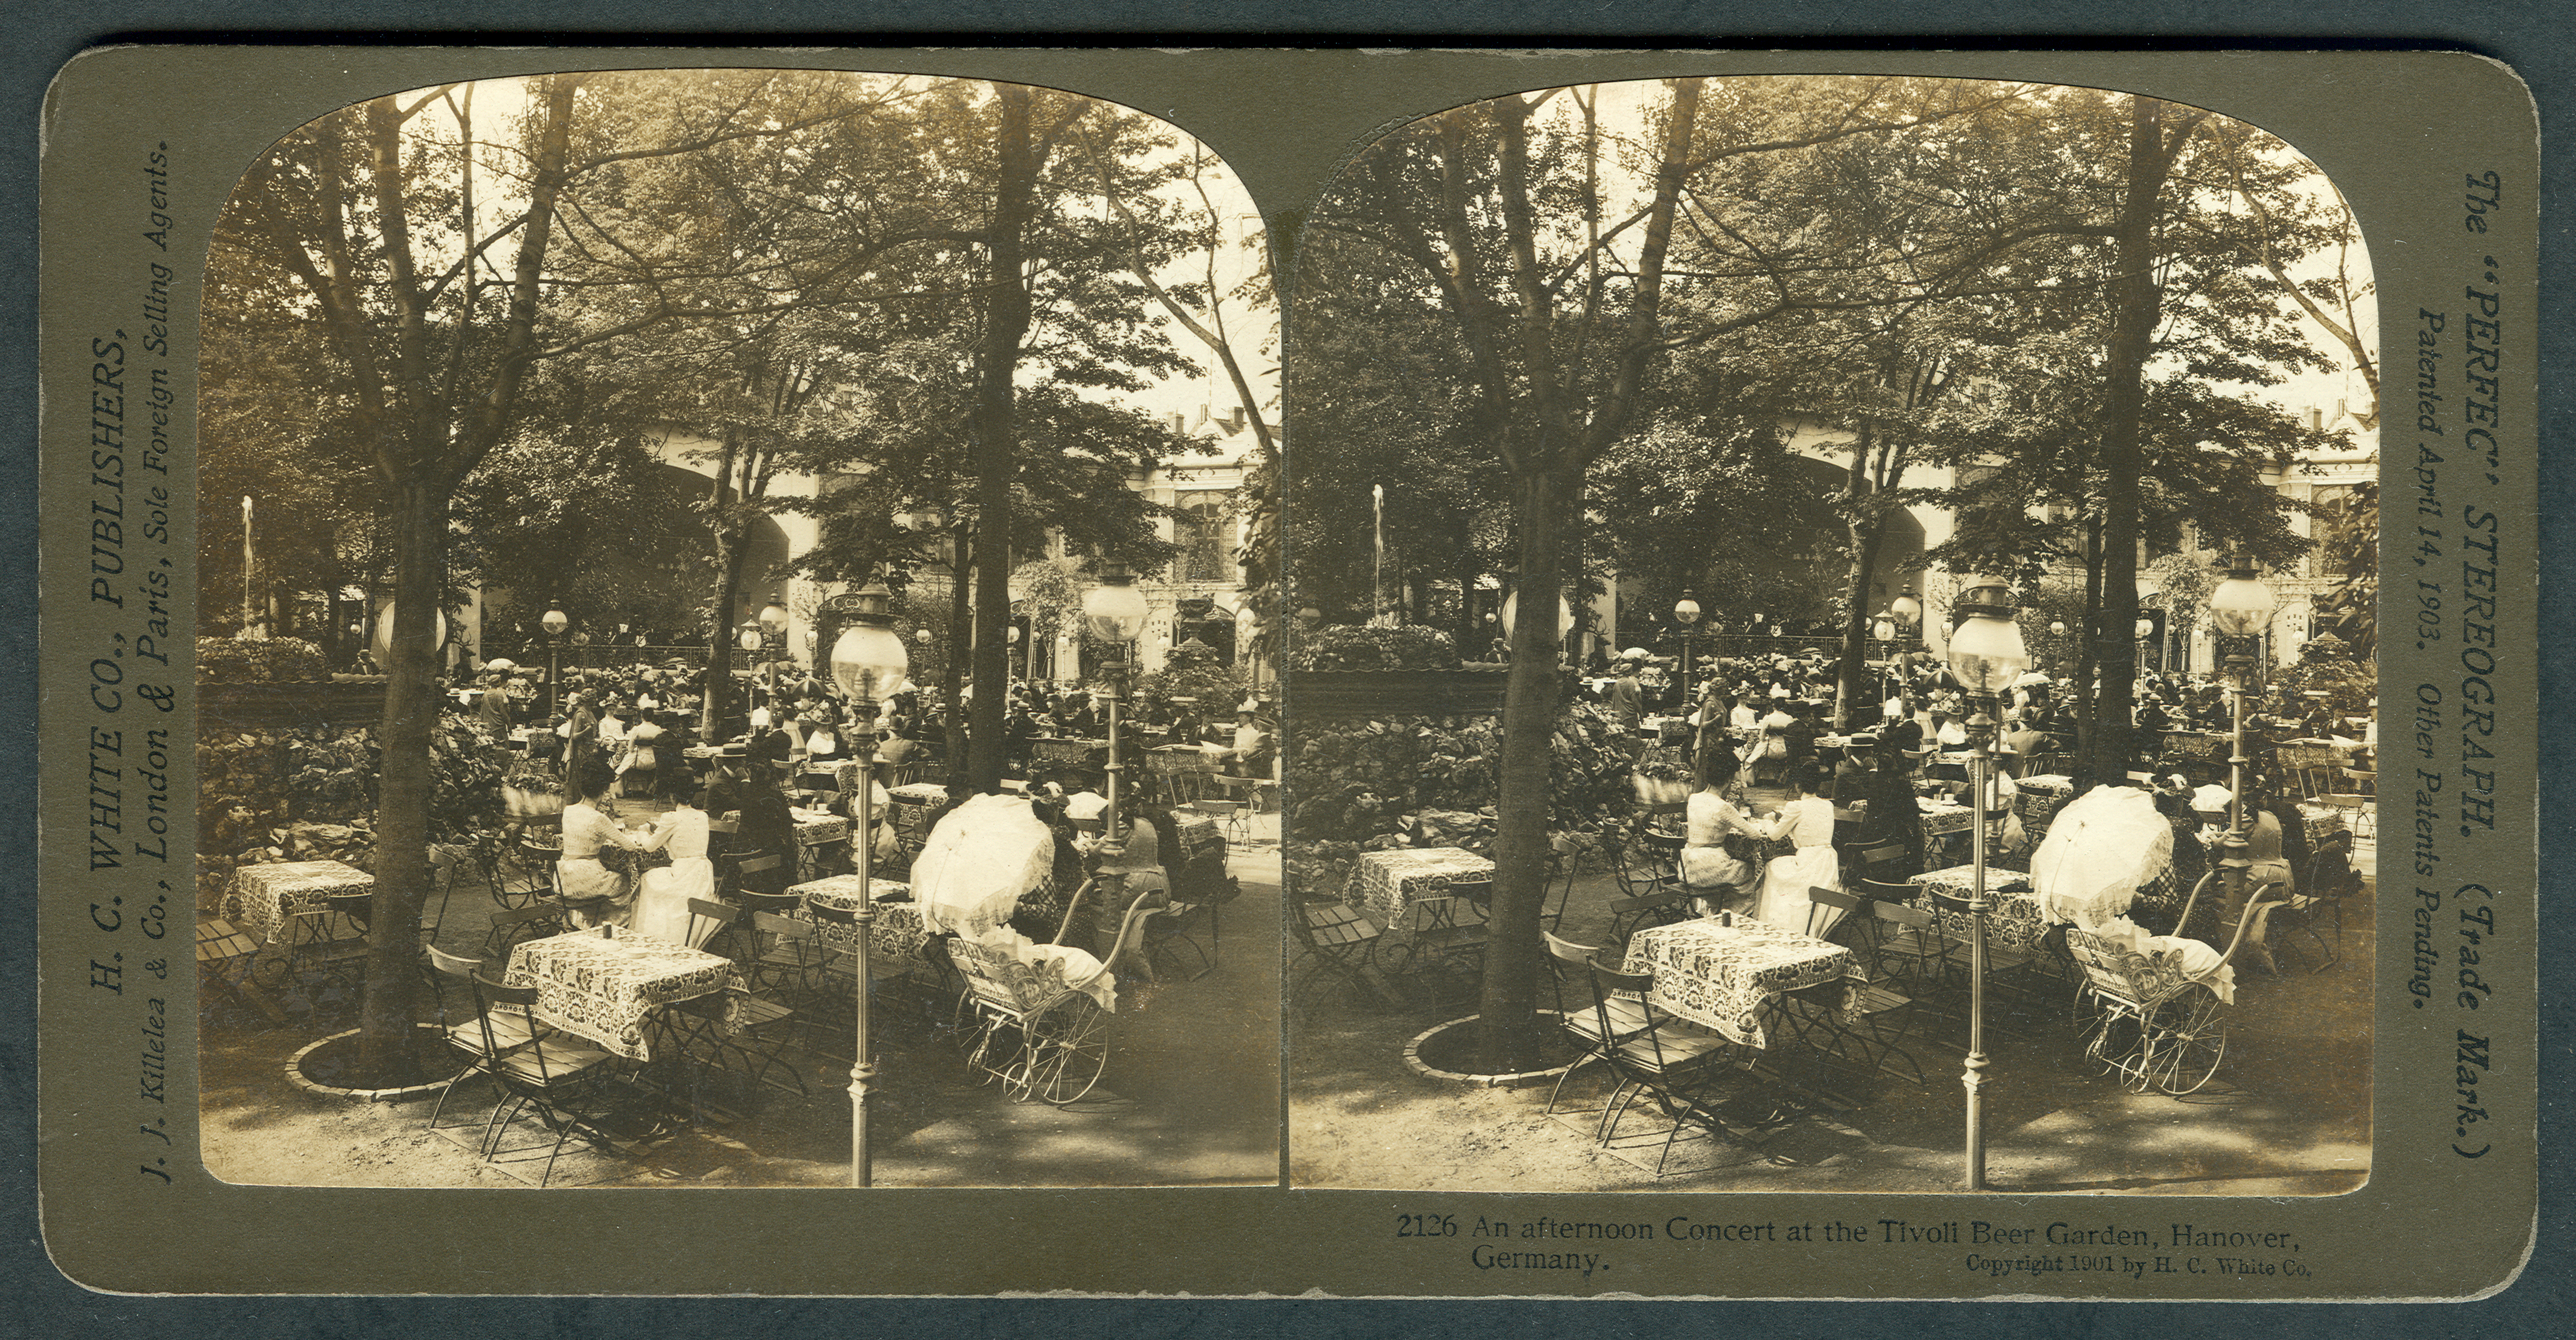 File:H. C. White Co. 2126 An afternoon Concert at the Tivoli Beer ...